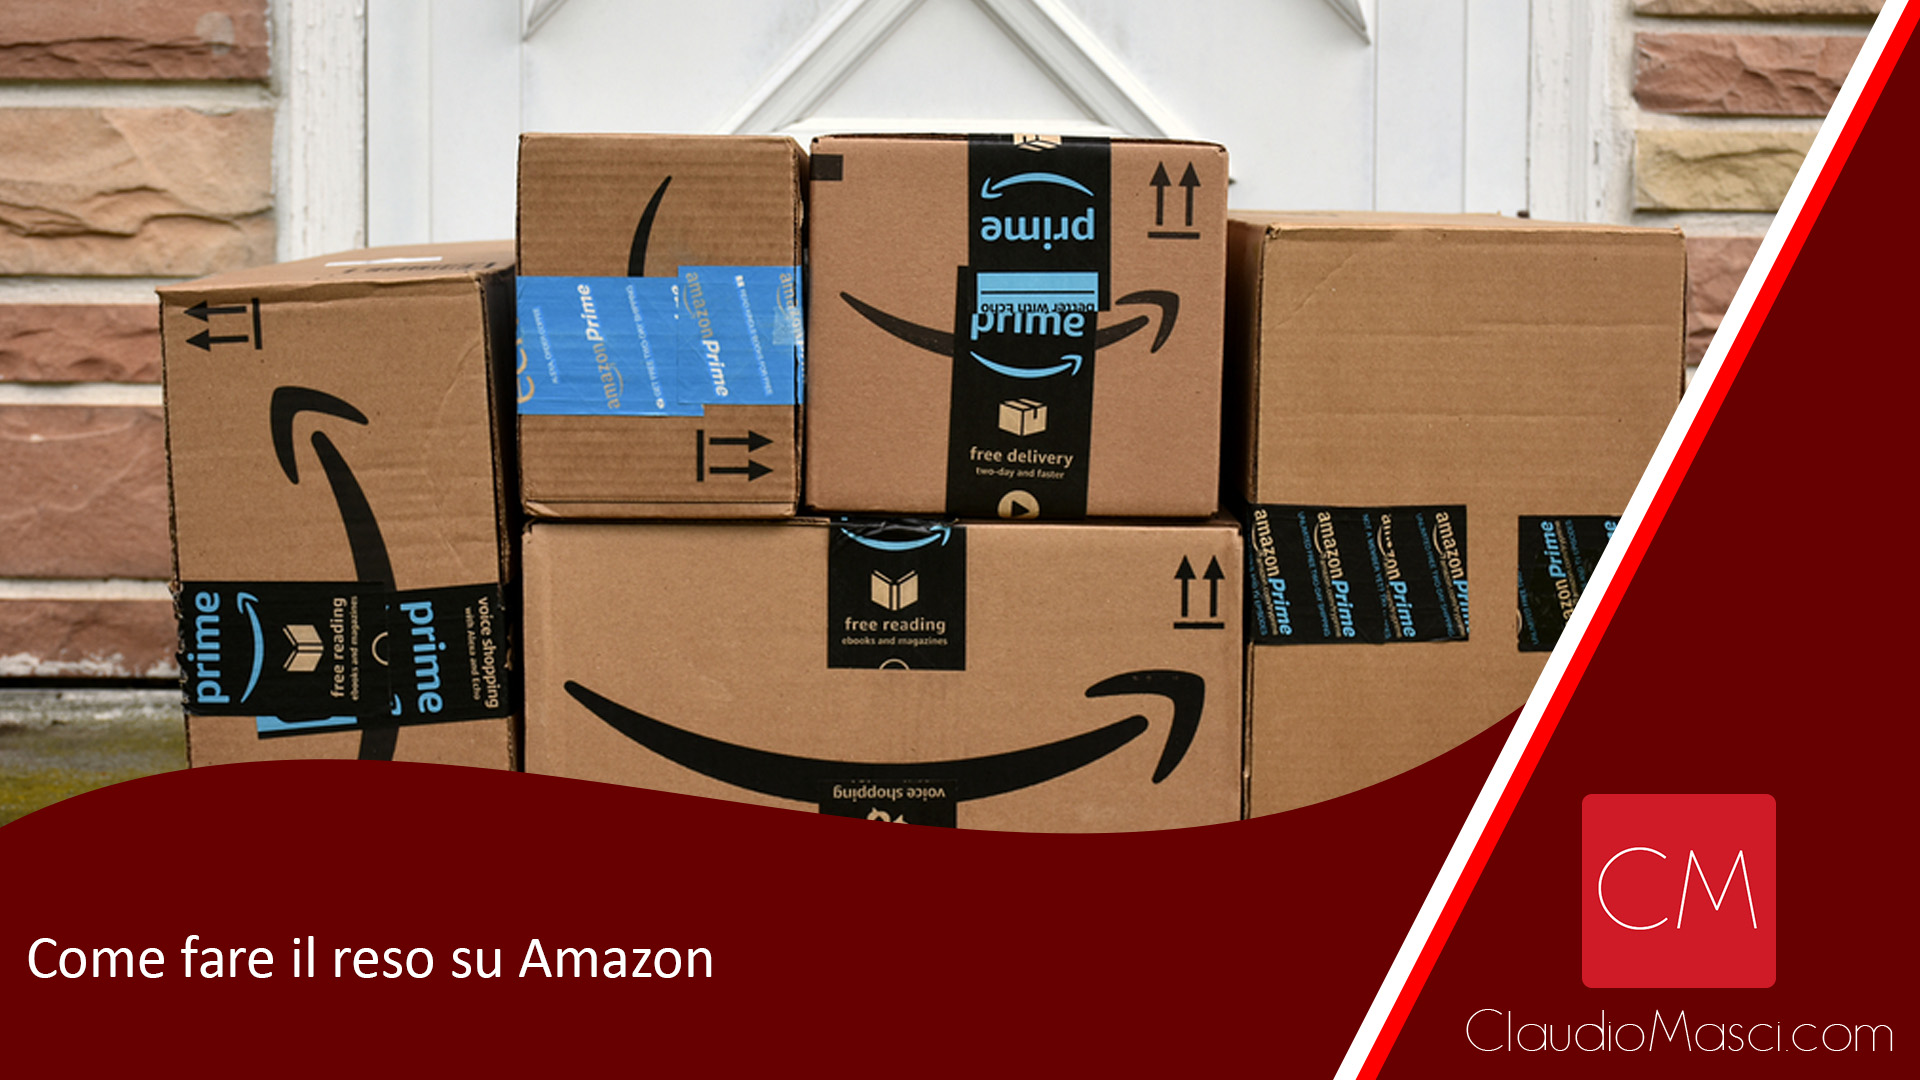 Come fare il reso su Amazon